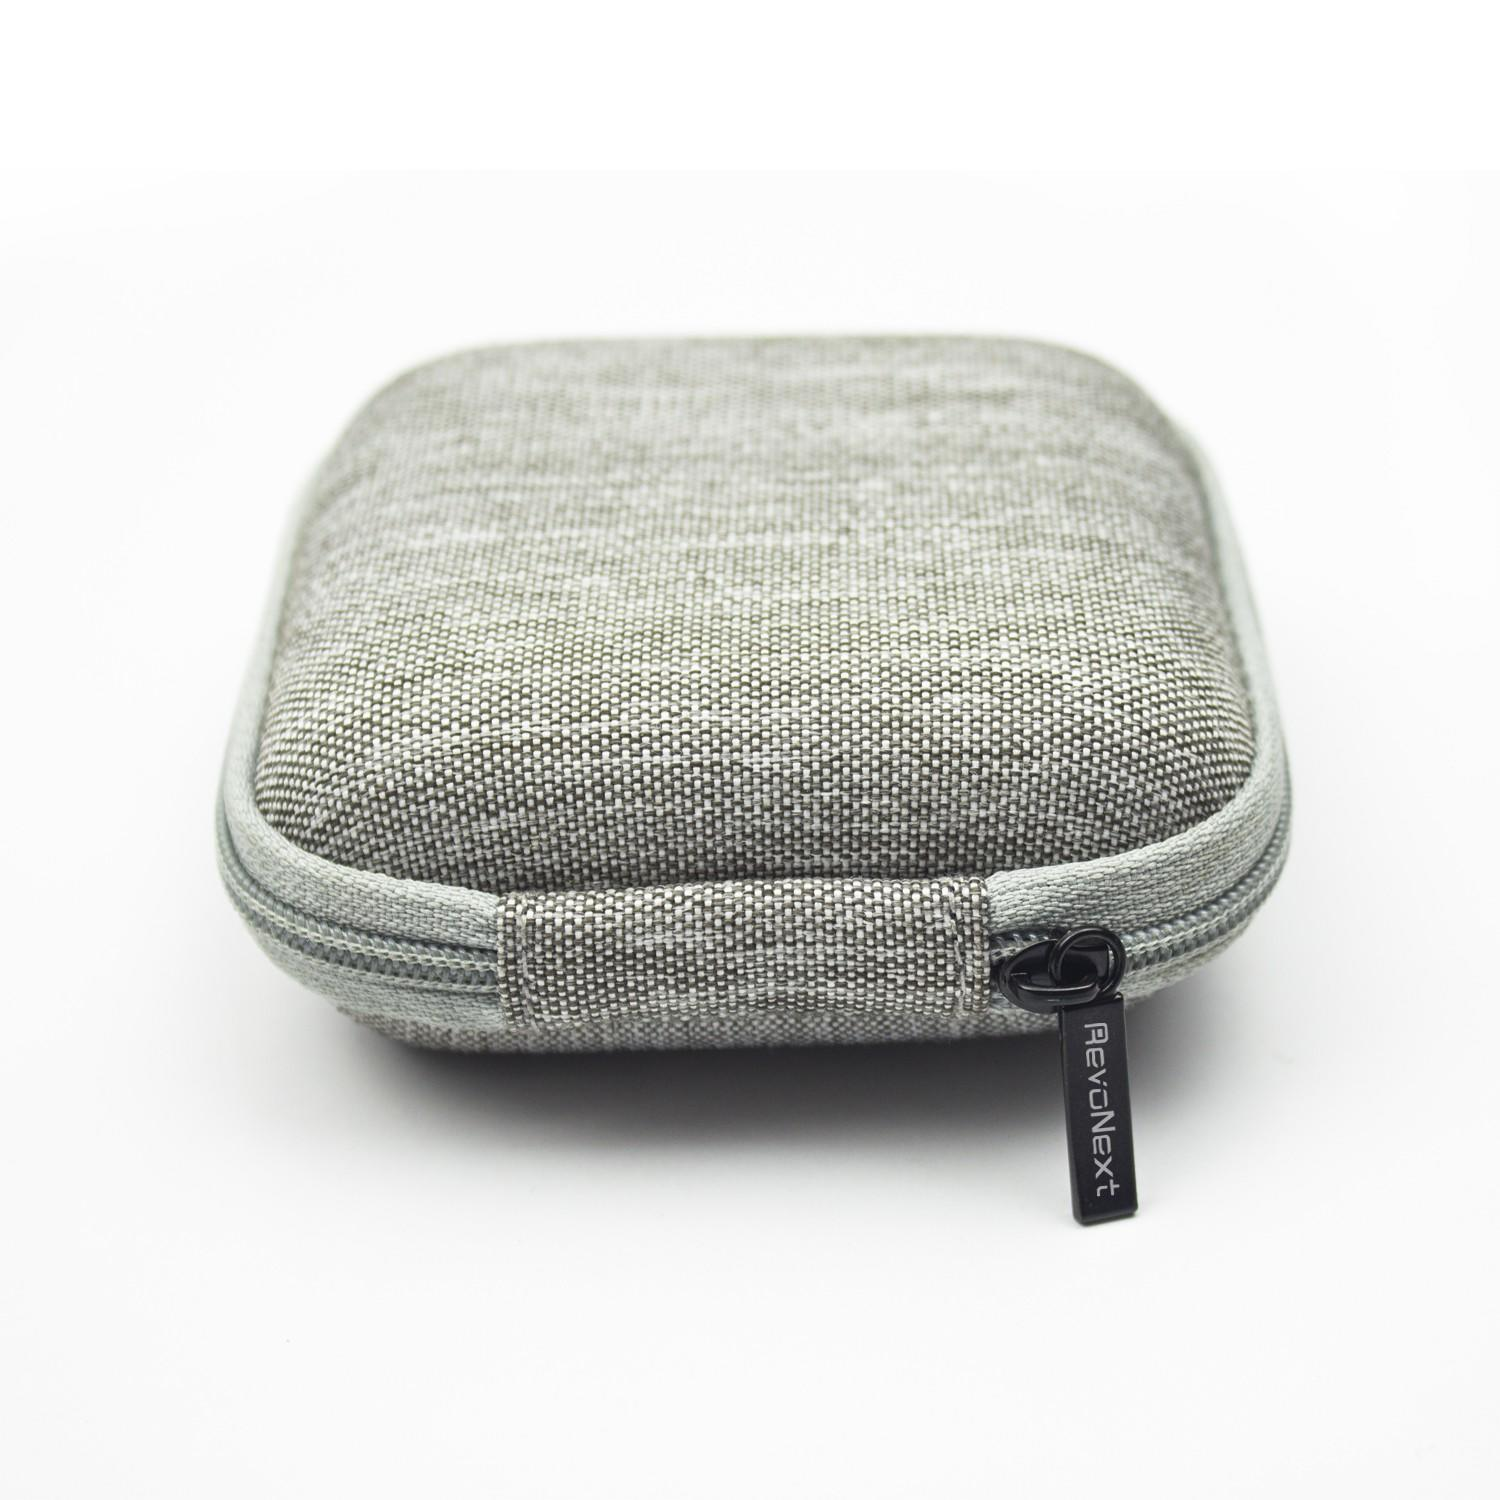 RevoNext headphone travel case factory direct supply for headphone